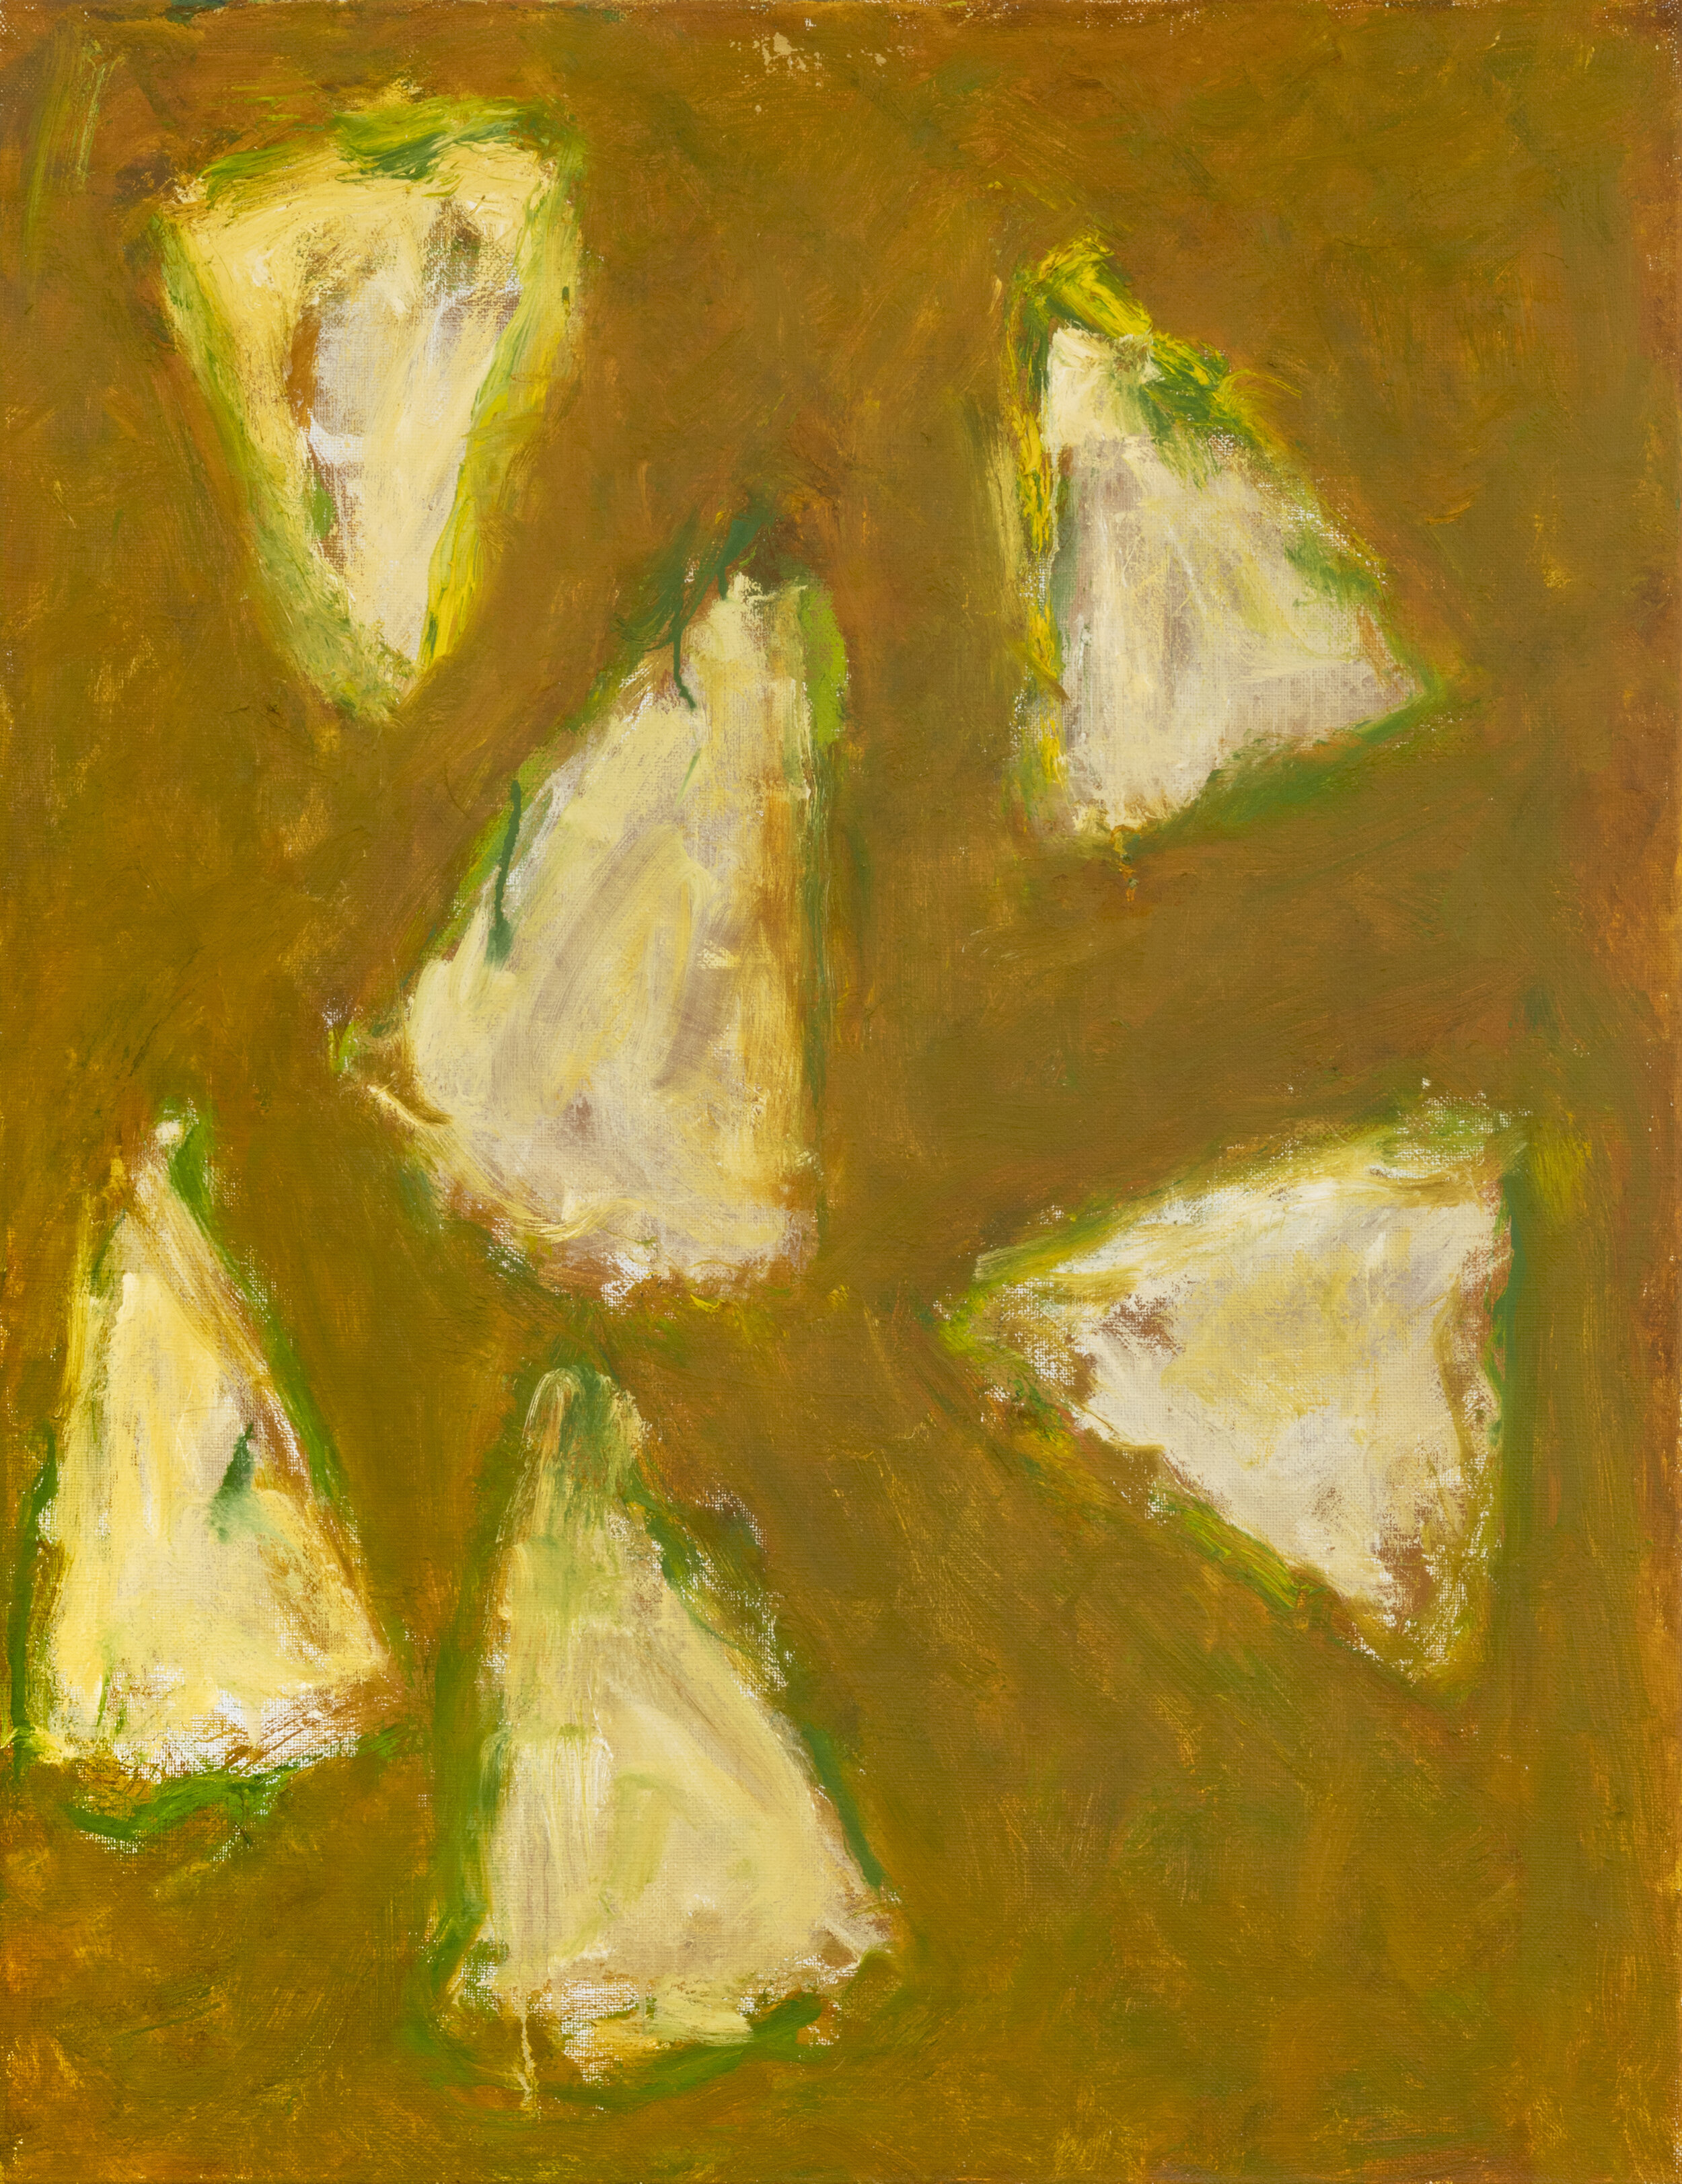 untitled,  2001 oil on linen 40 x 30 inches